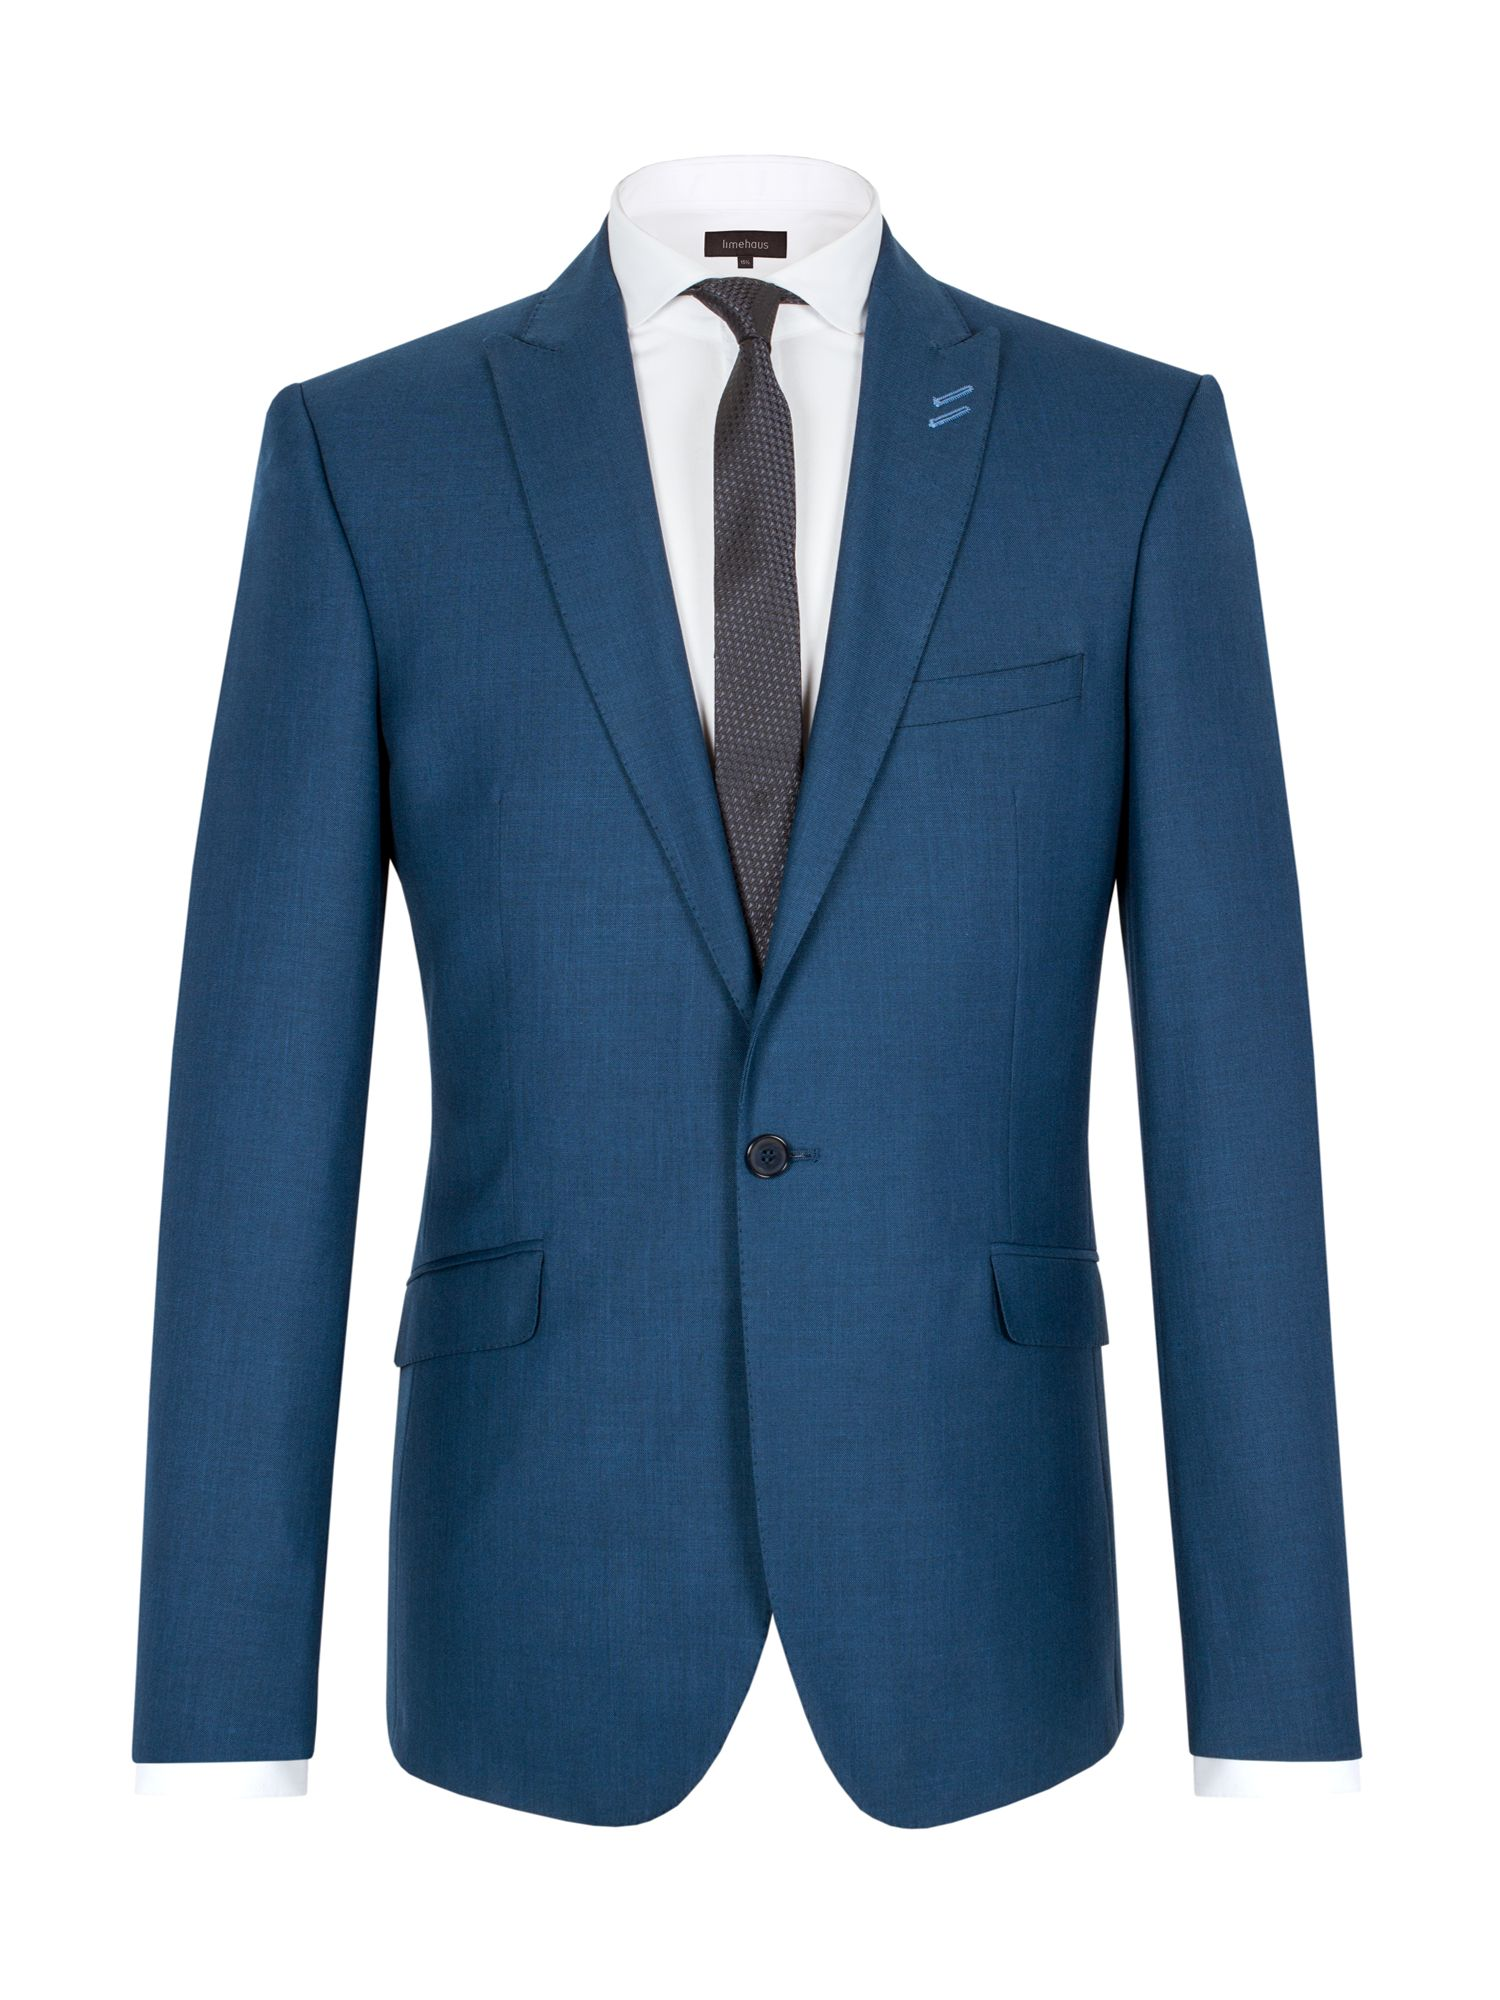 Limehaus Men's Limehaus Pick and pick single breasted suit jacket, Blue